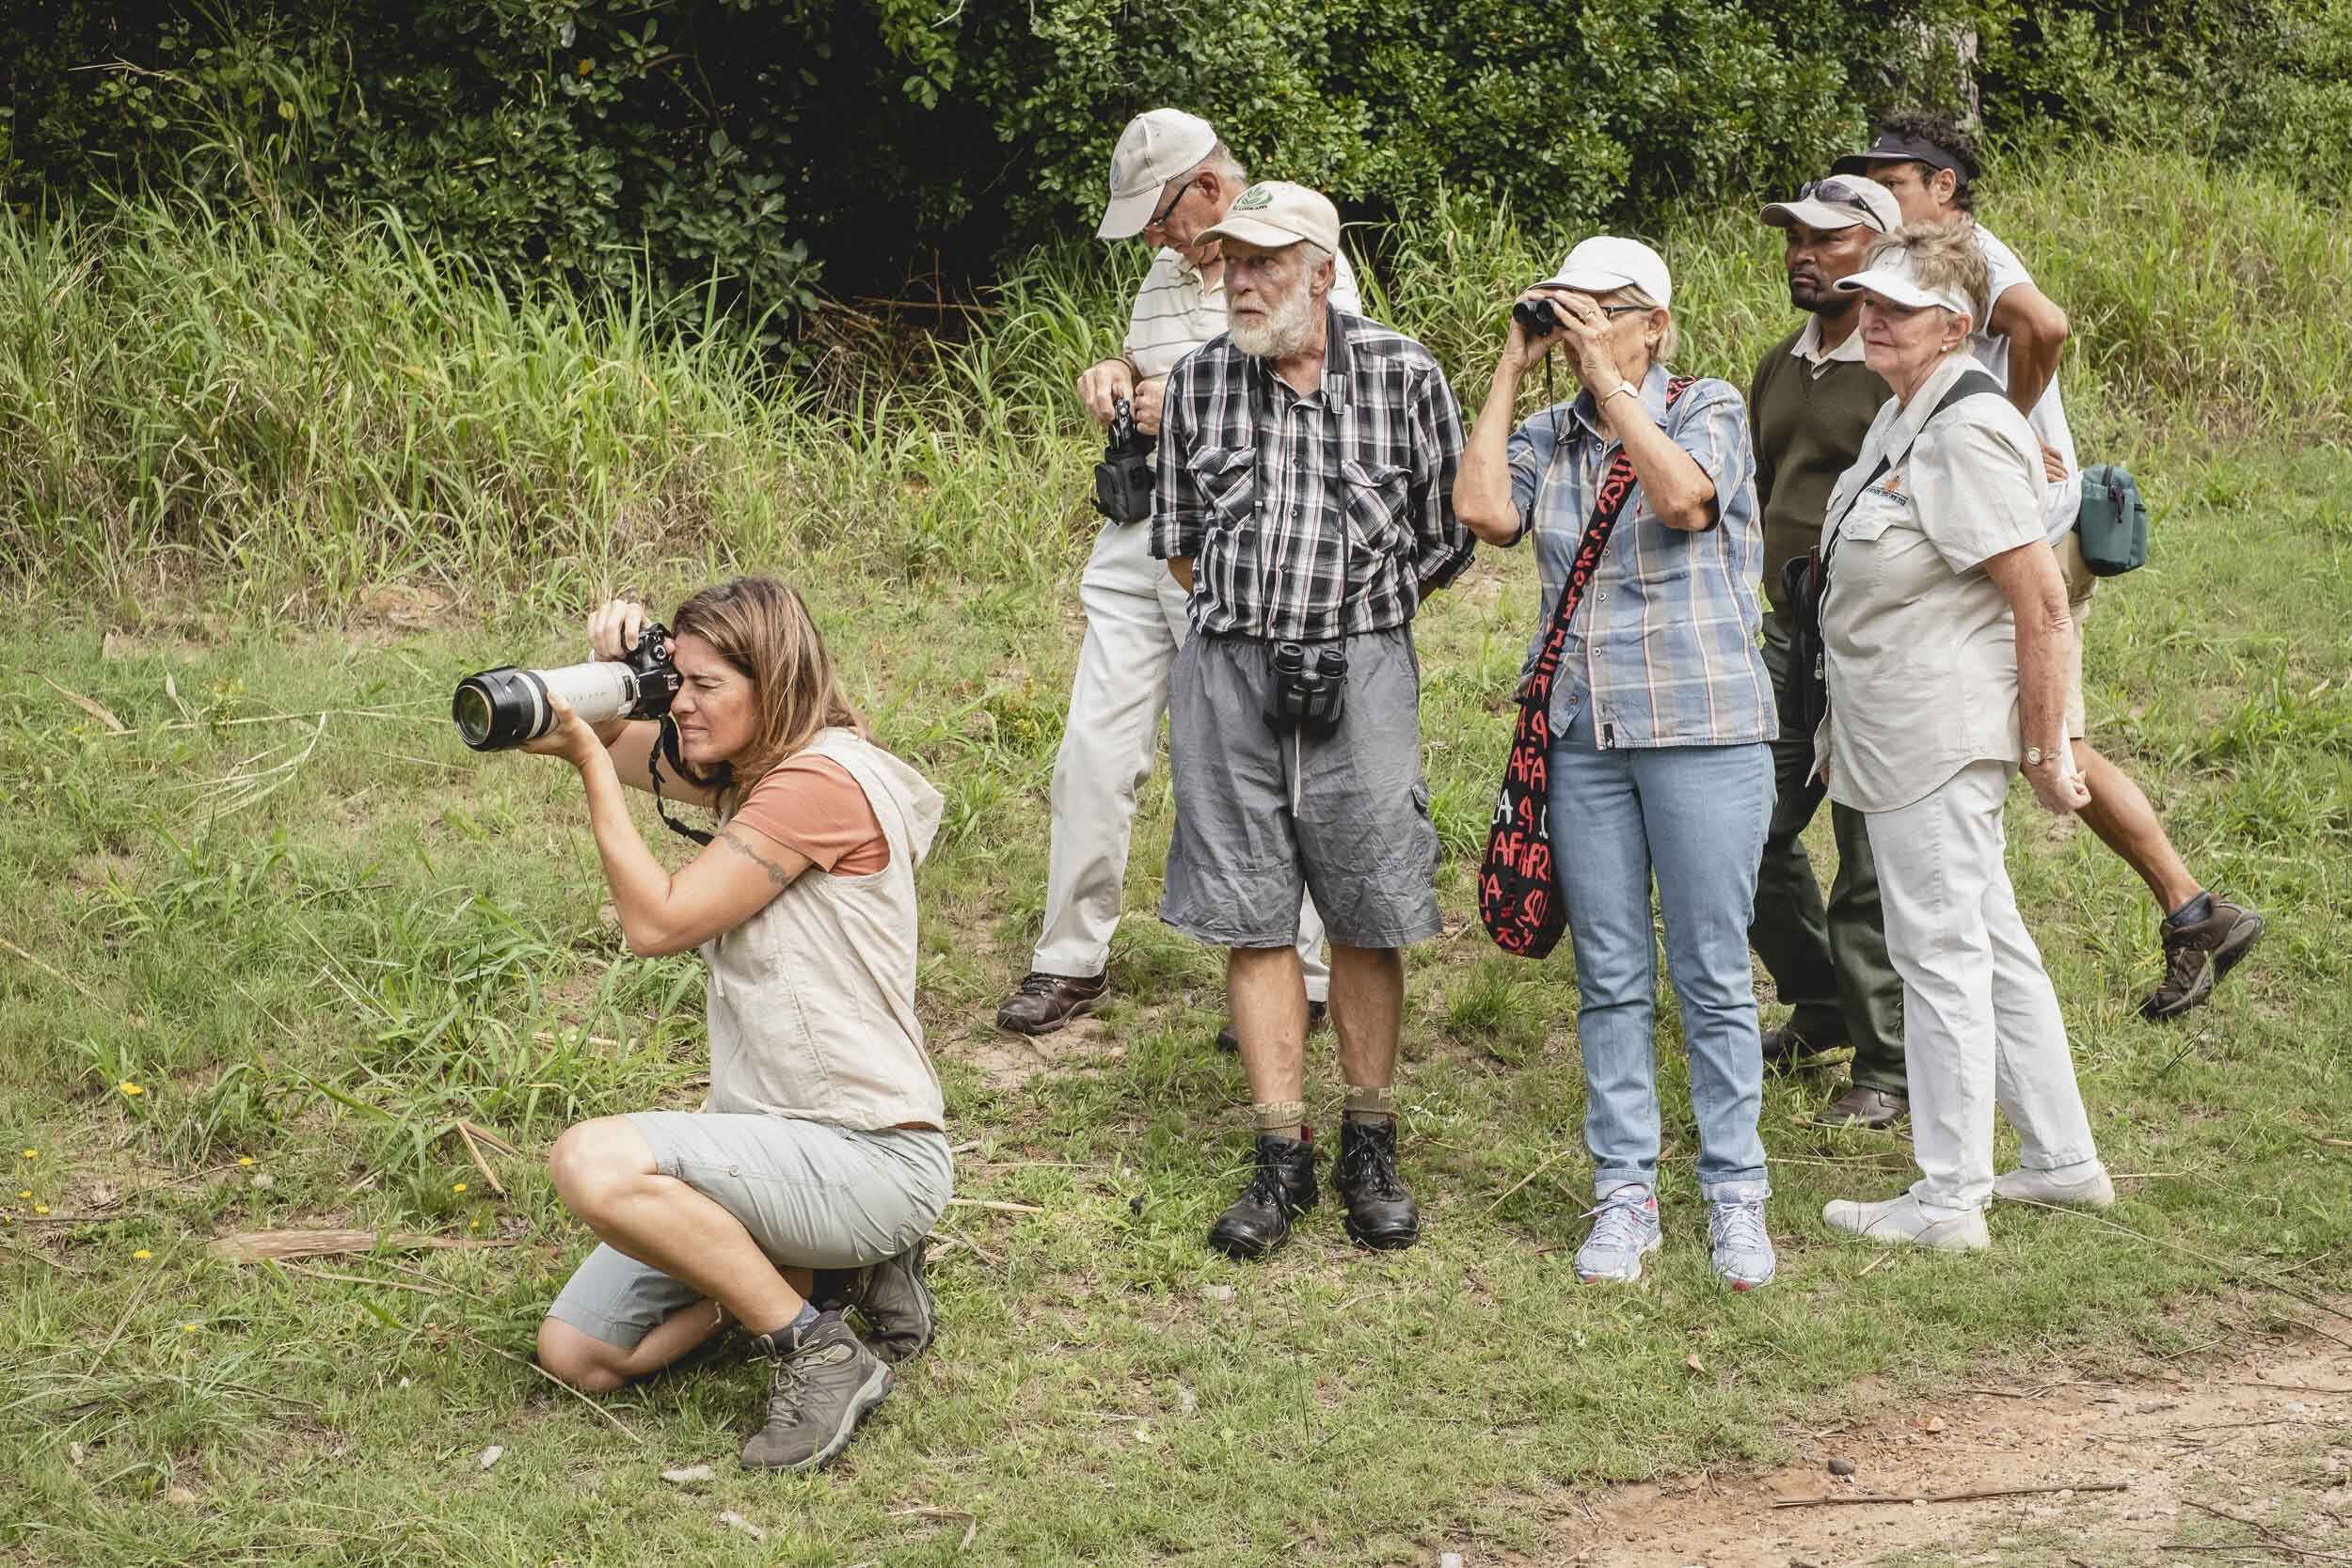 Birding Experience - Come and enjoy a morning of birding in the heart of Port Elizabeth with bird expert Andy Nixon. Settlers Park is a bird magnet in the center of Port Elizabeth. Birds in the park include half-collard Kingfisher, Knysna Woodpecker, Grey Sunbird, Peregrine Falcon, Thick-billed Weaver and Black Cuckooshrike. Knysna Turaco are also common in the park! All levels from beginner to experts welcome!